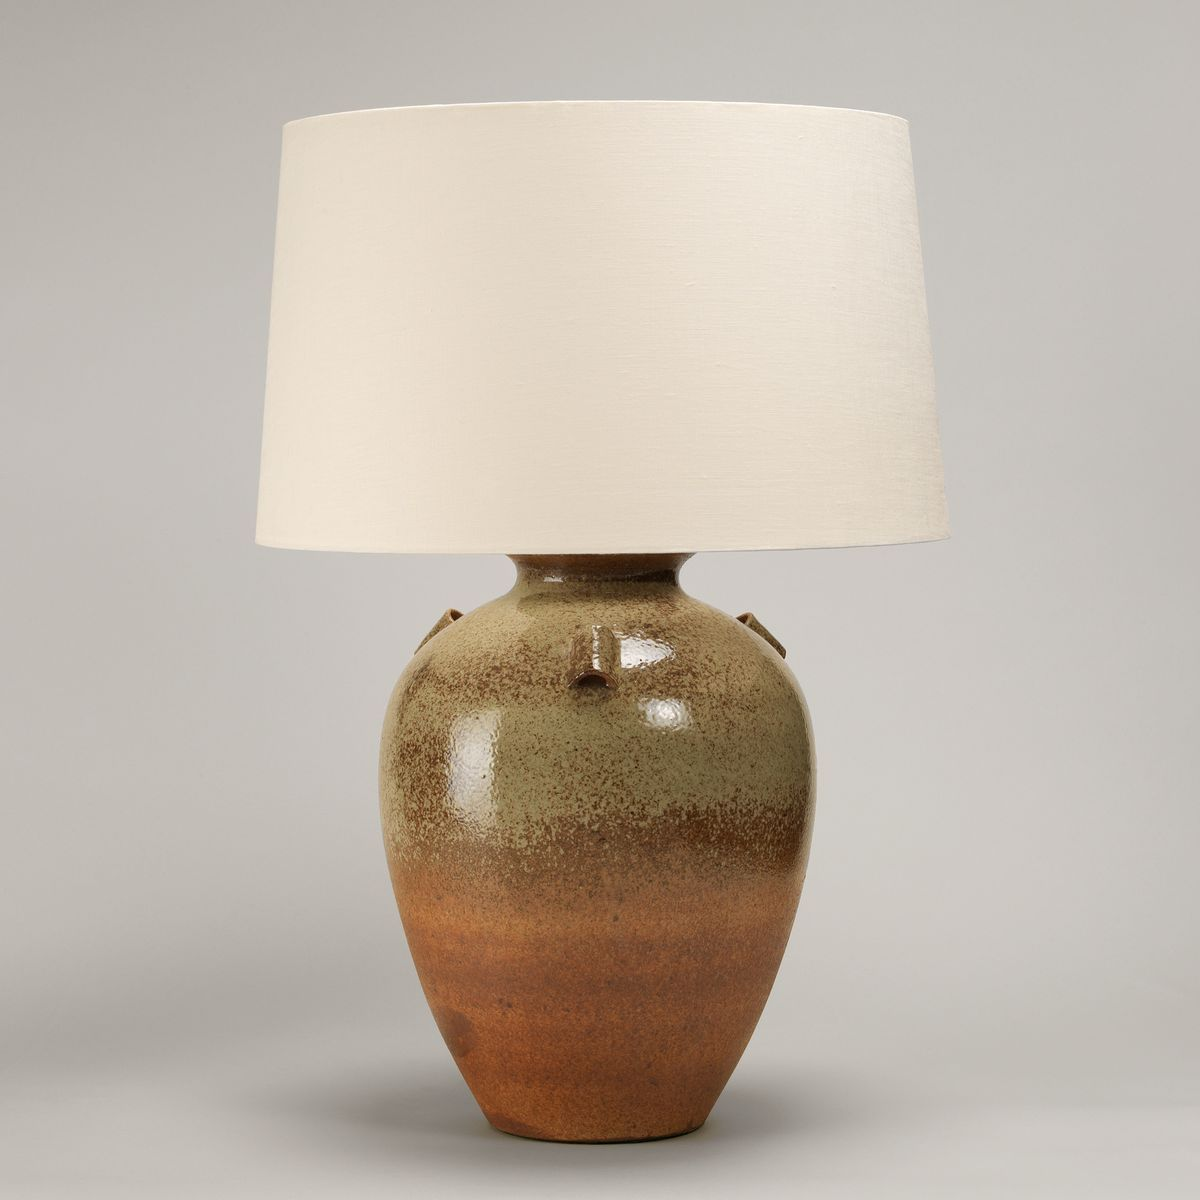 The Barton Vase Table Lamp with natural tones and the texture of stoneware with a terracotta wash is complemented by the sheen of the speckled glaze decorating the top of the vase. The small handles add character. #countrylife #décor #designinspiration #dreamhouse #homedecor #homeimprovement #homeliving #inspiration #interiordesign #lifestyle #luxury #luxuryhomes #luxurylifestyle